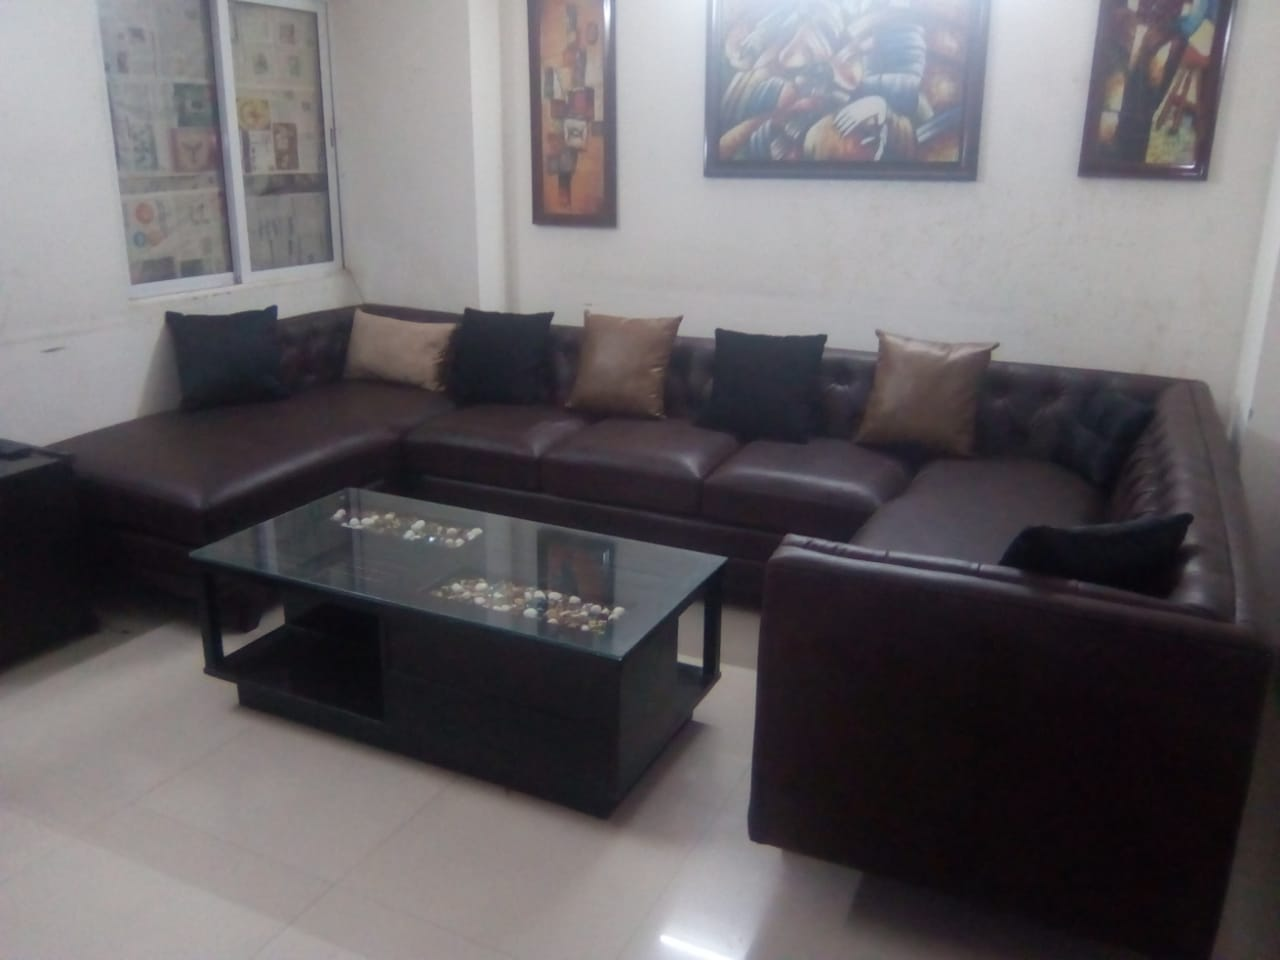 zaphire Sectional Sofa